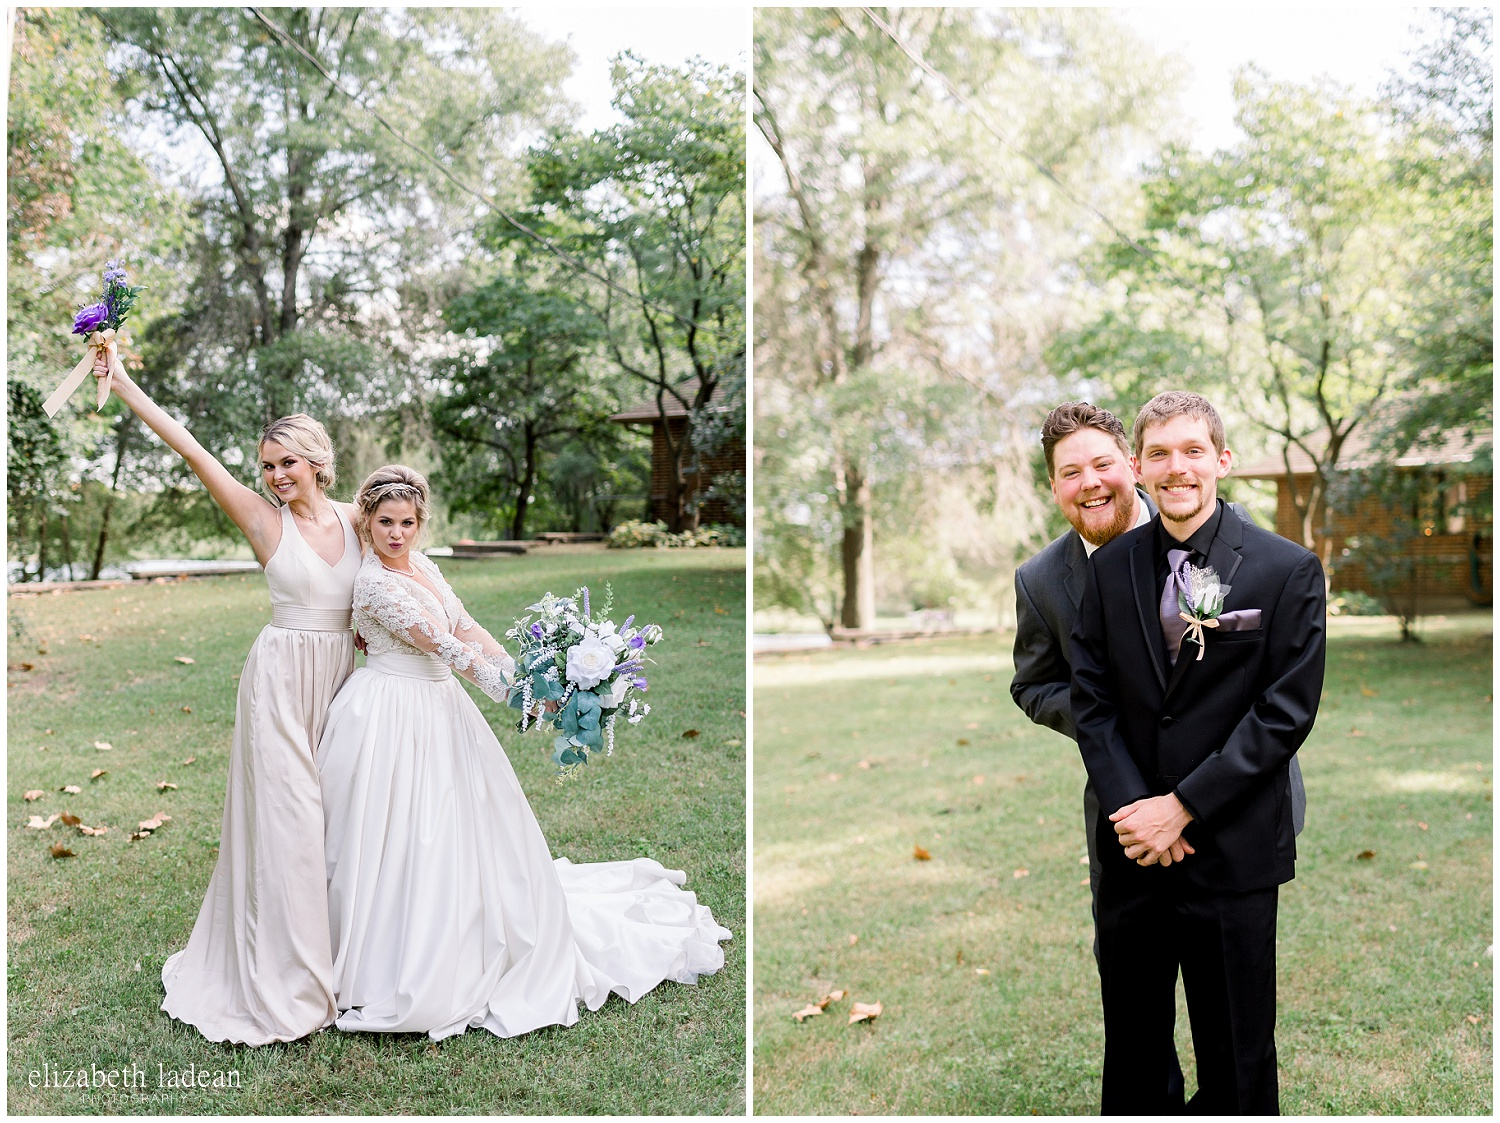 -behind-the-scenes-of-a-wedding-photographer-2018-elizabeth-ladean-photography-photo_3564.jpg